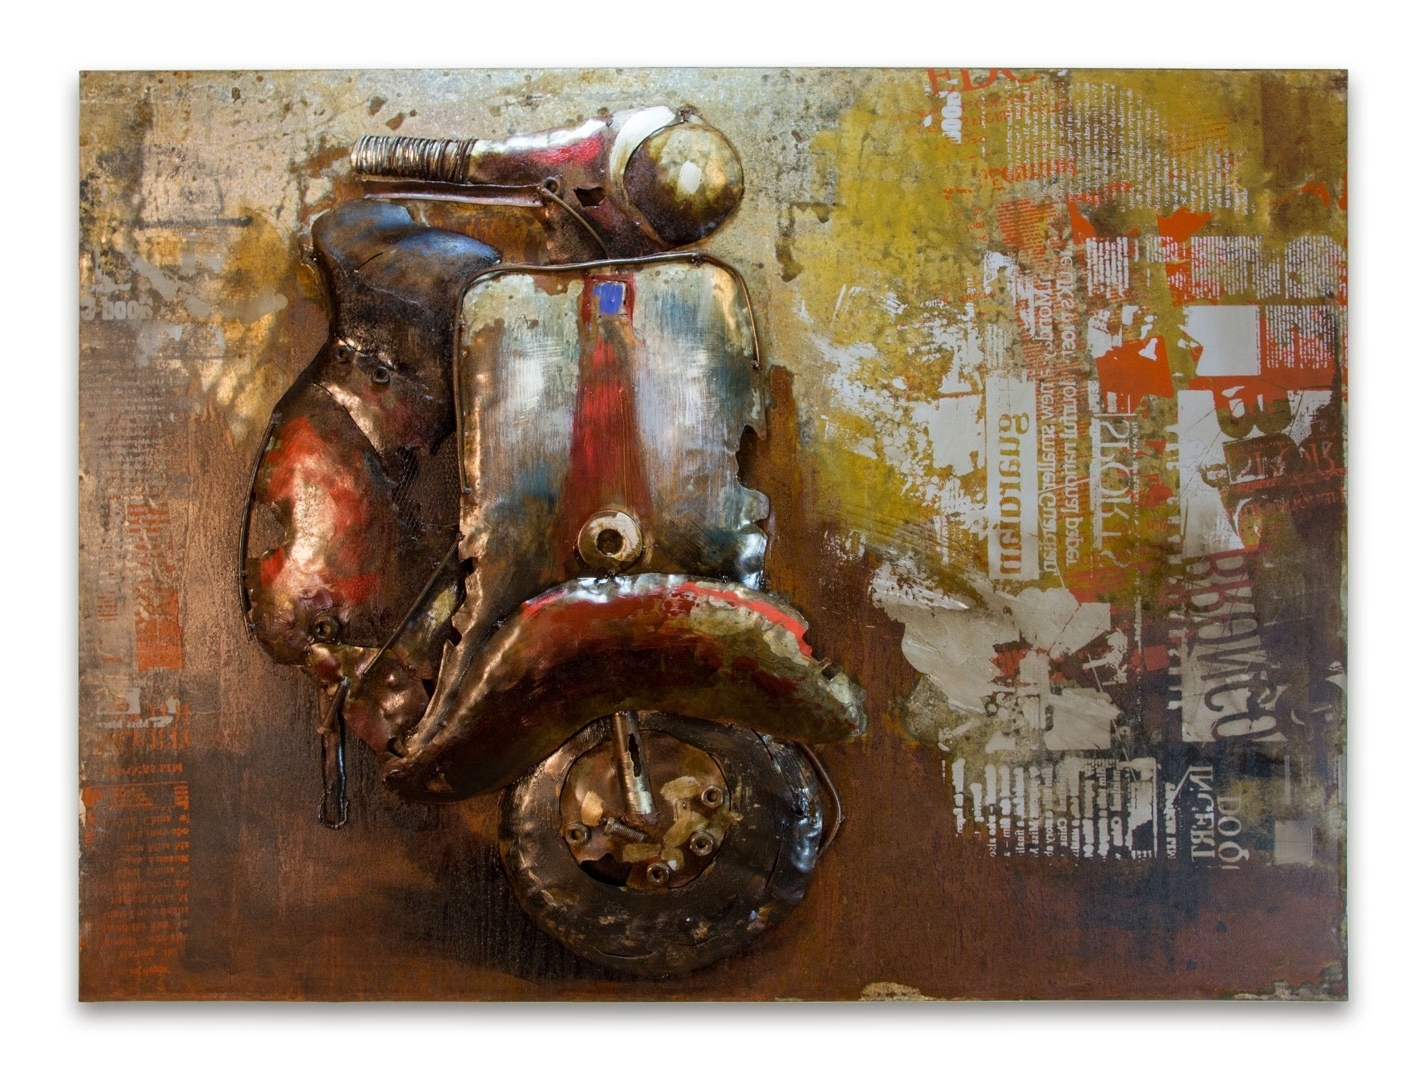 Italian Wall Art Decor Pertaining To Well Known Wall Art Decor: Scooter Crafted Italian Metal Wall Art Handmade (Gallery 8 of 15)